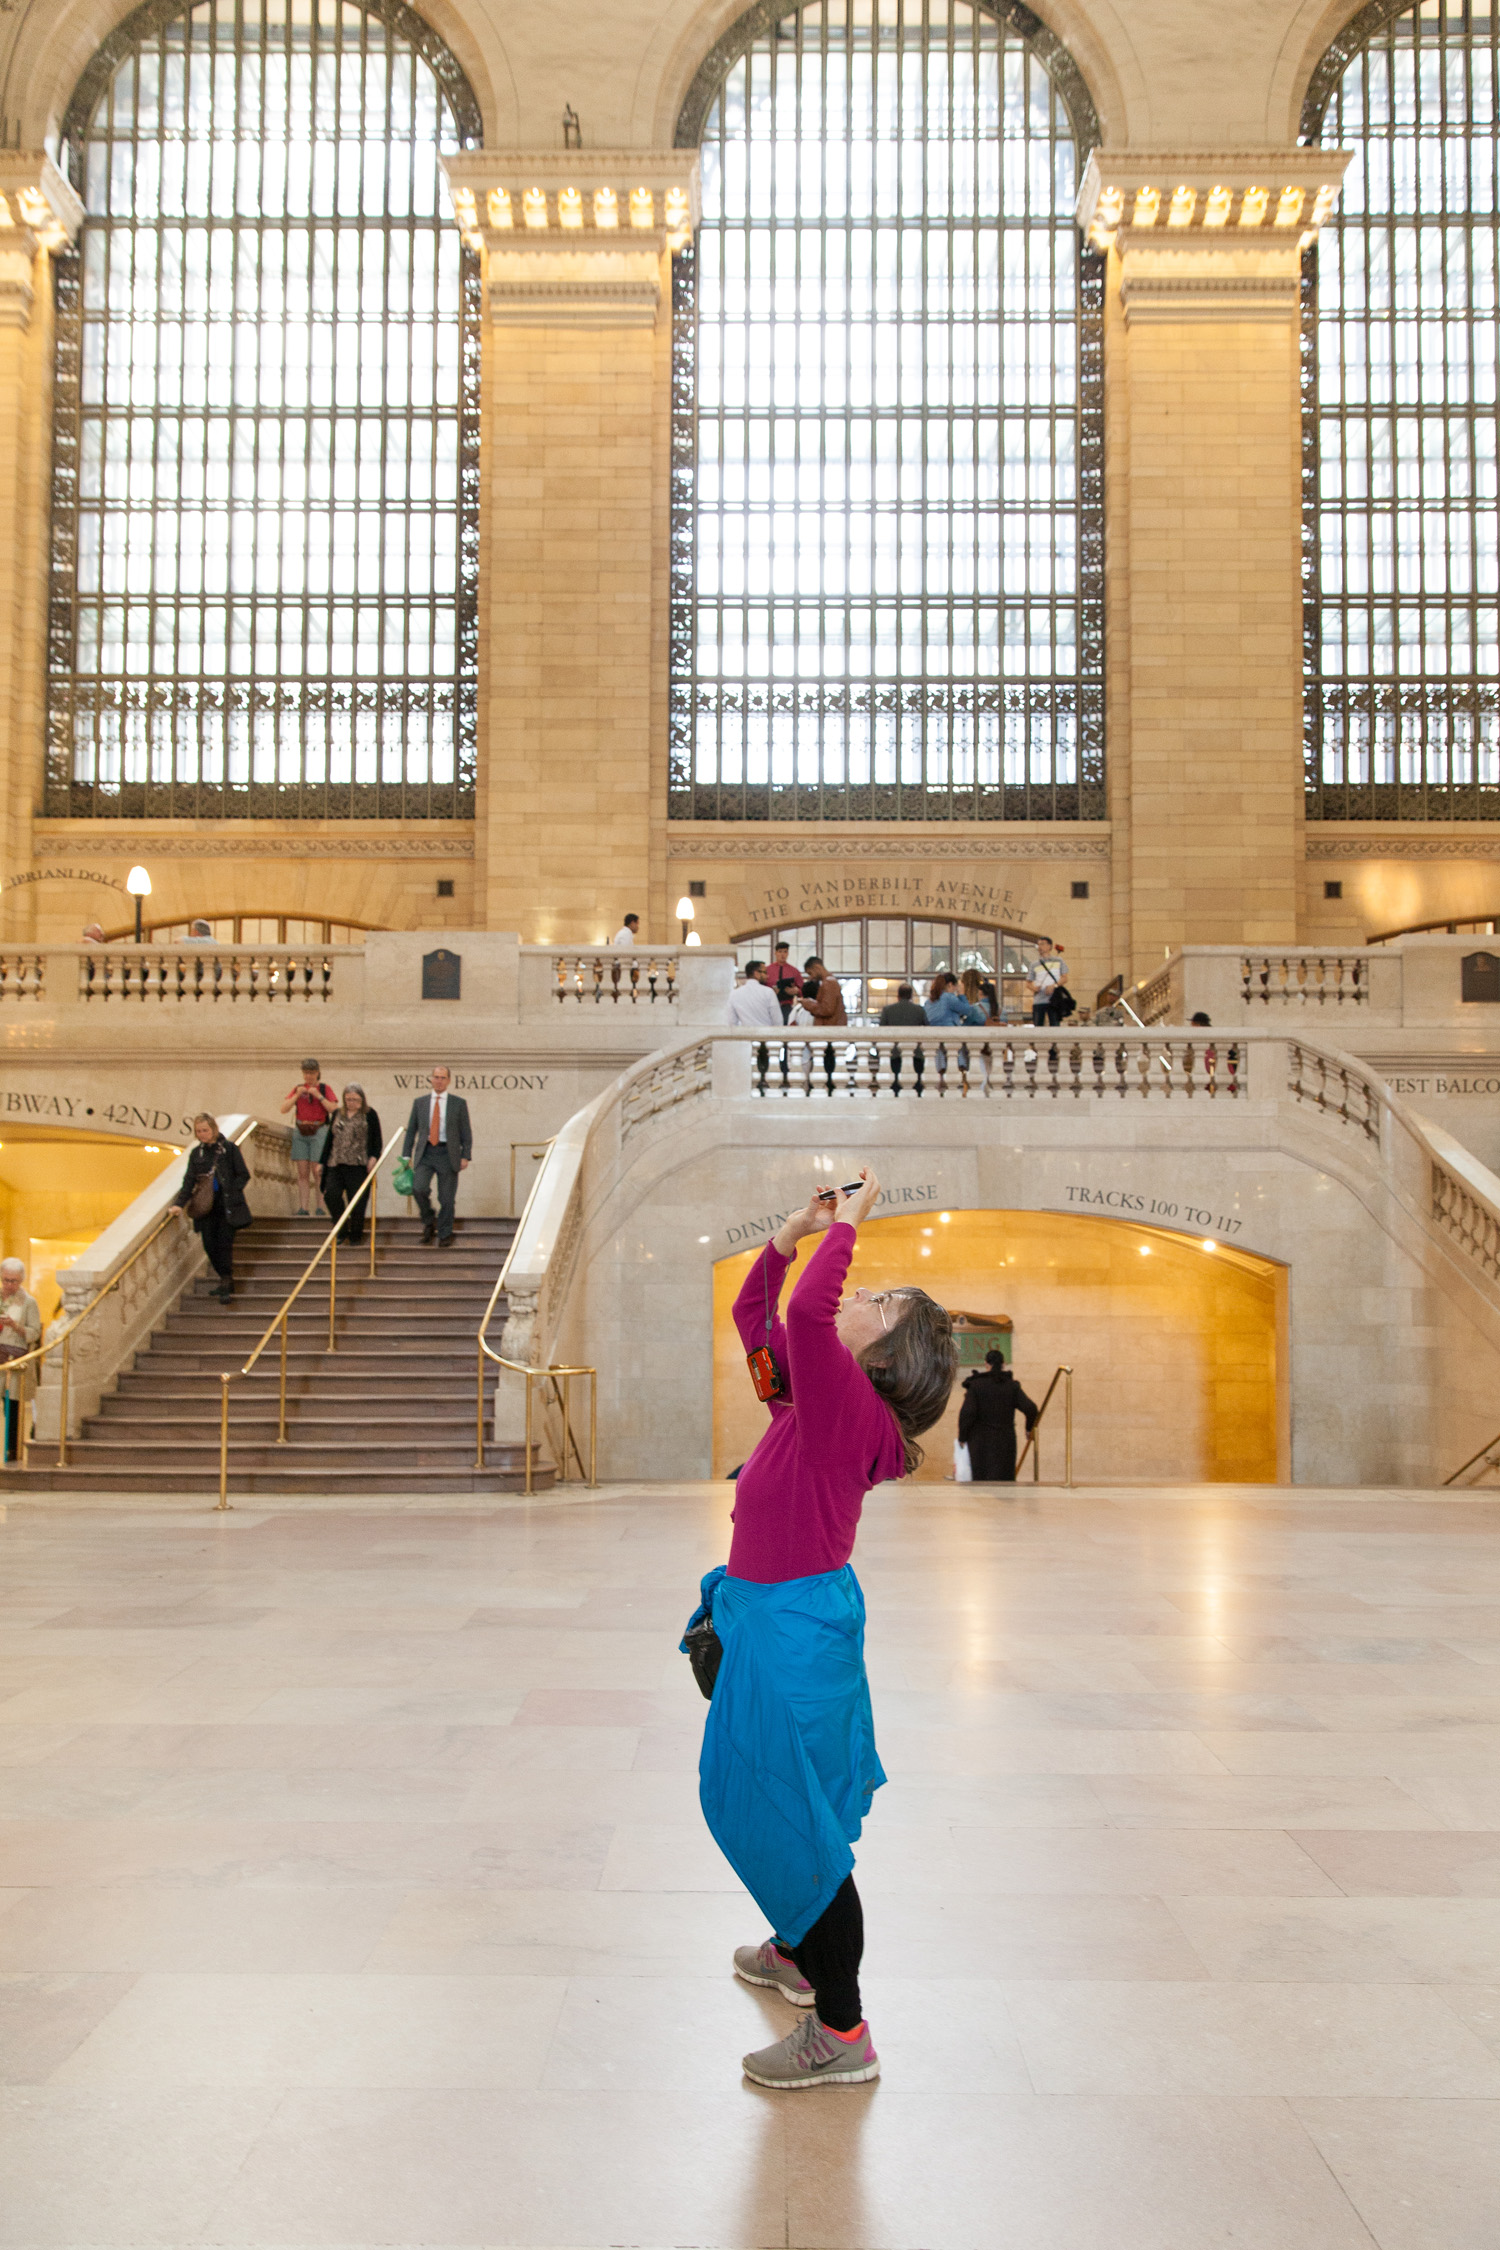 Copy of Grand Central Station New York editorial photographer